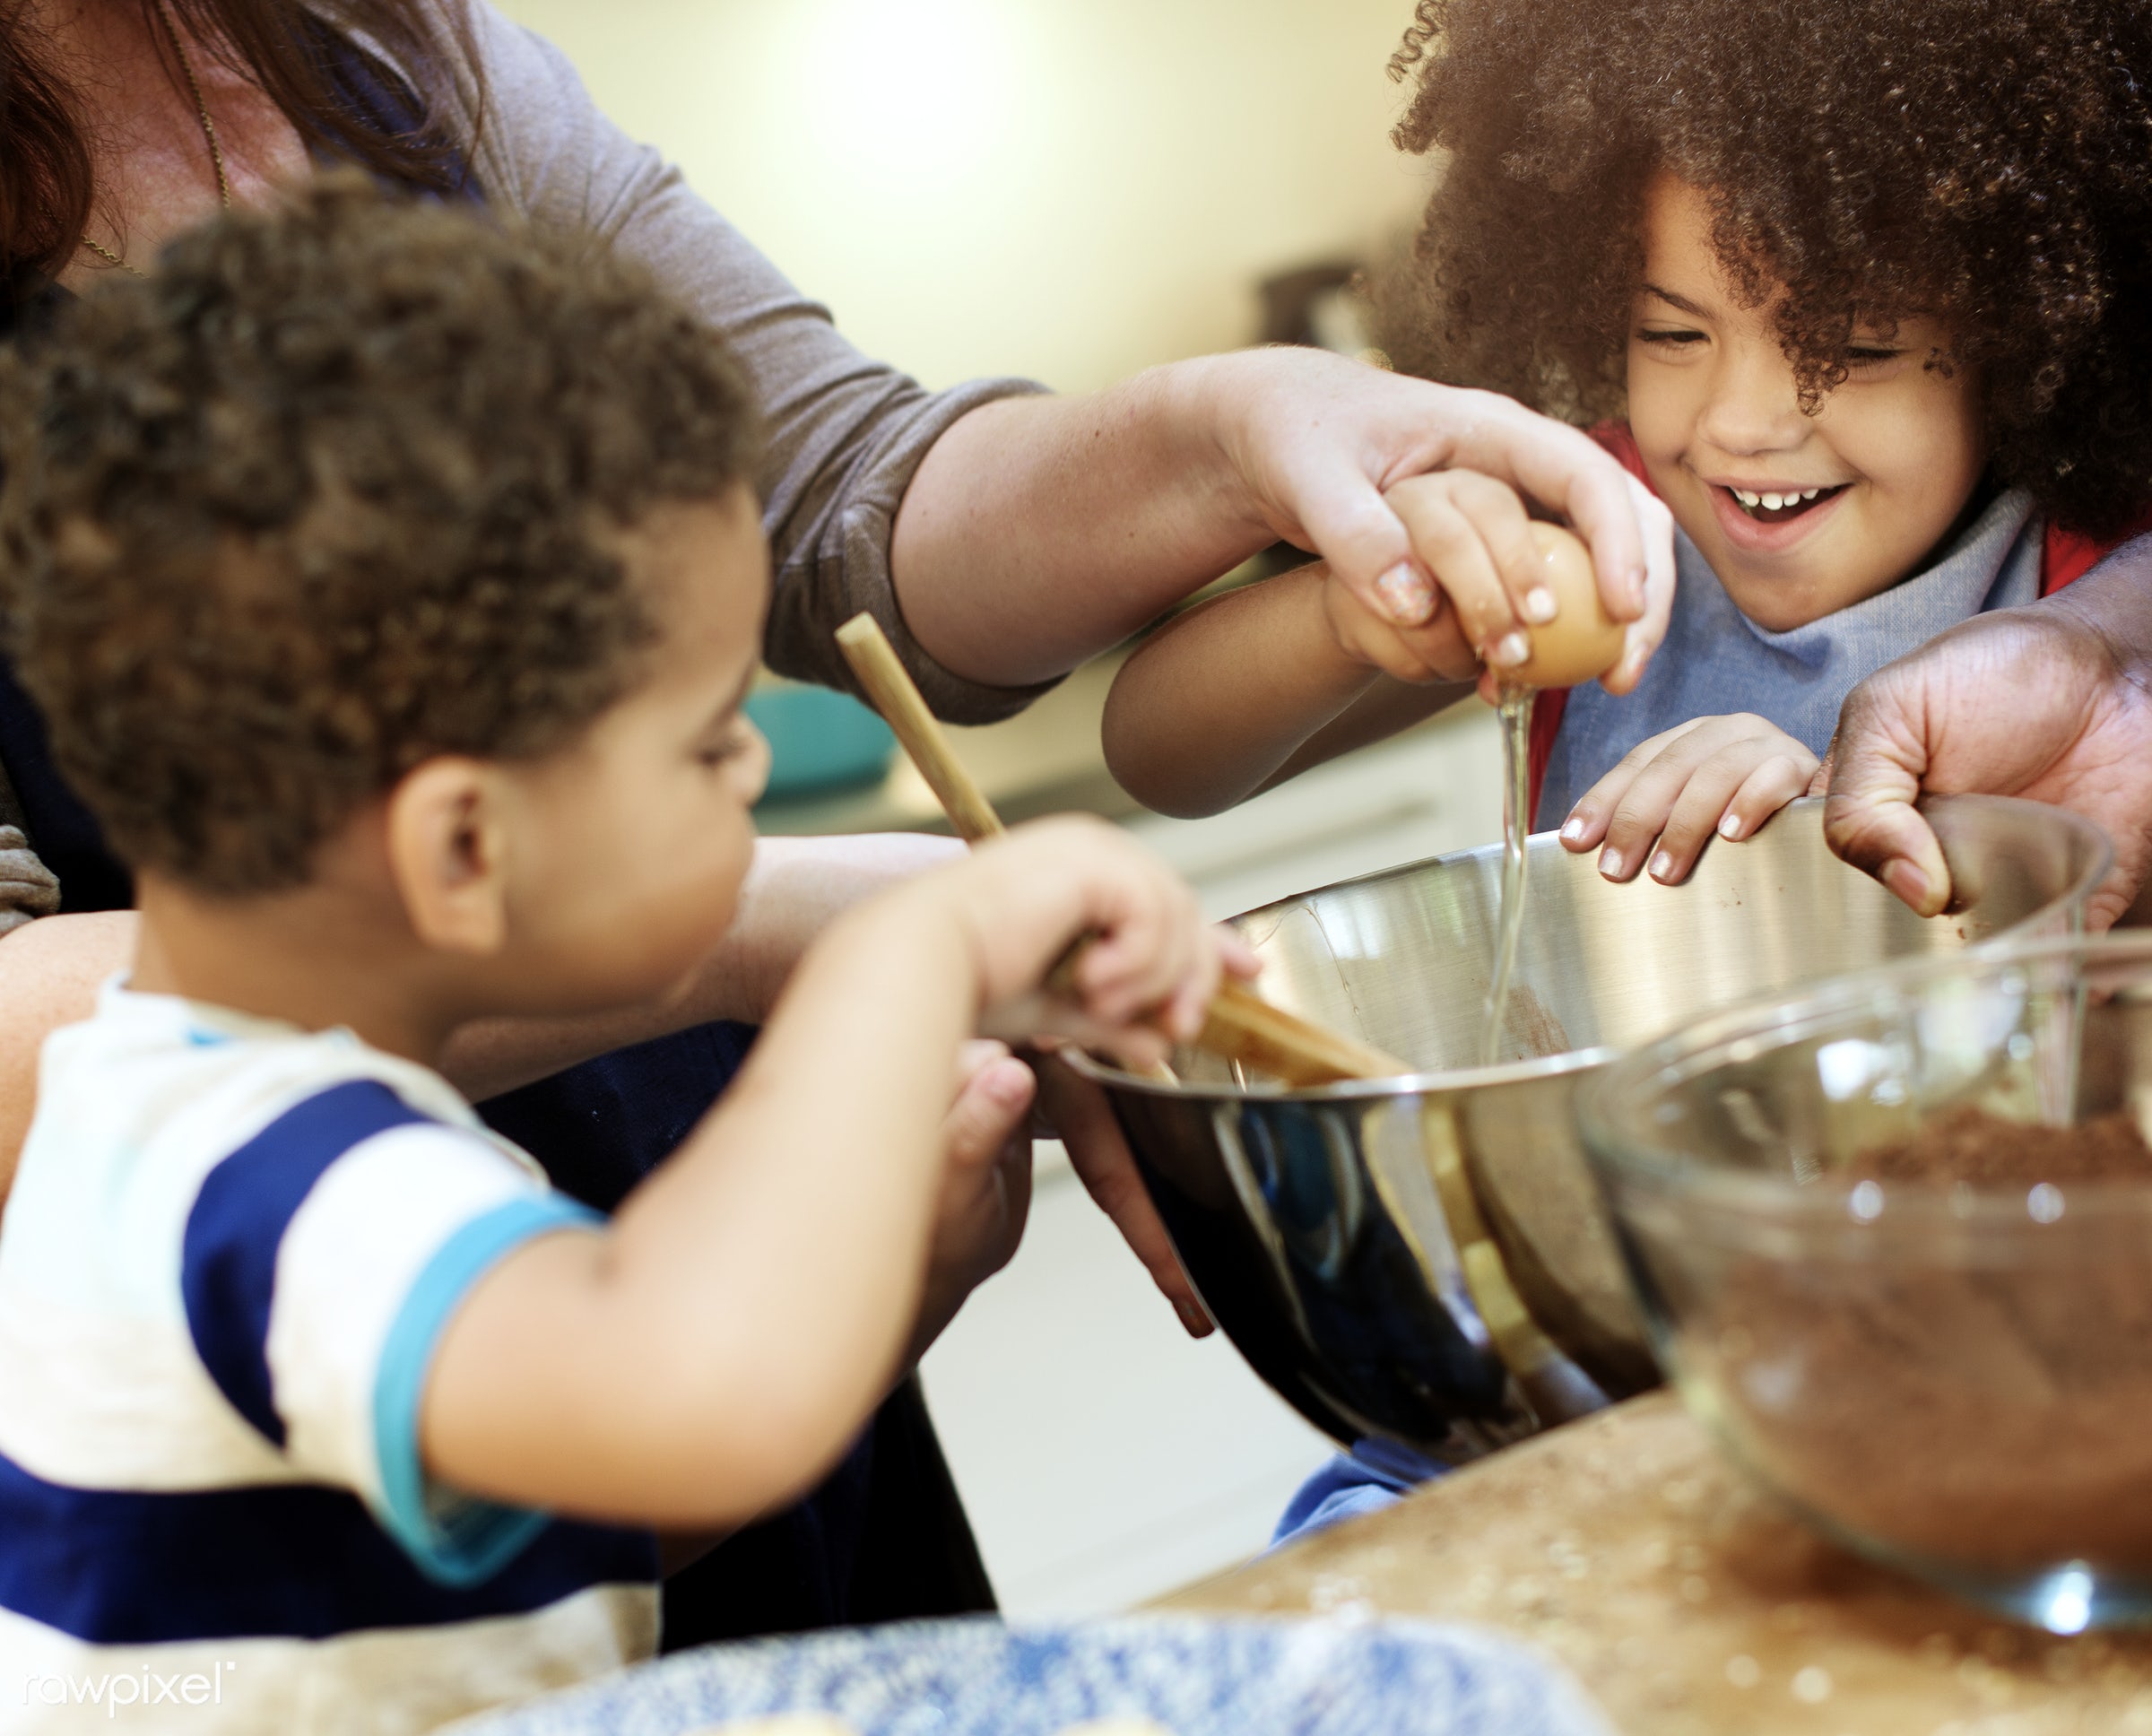 Family baking together in the kitchen - activity, african, african american, african descent, bakery, baking, black, bonding...